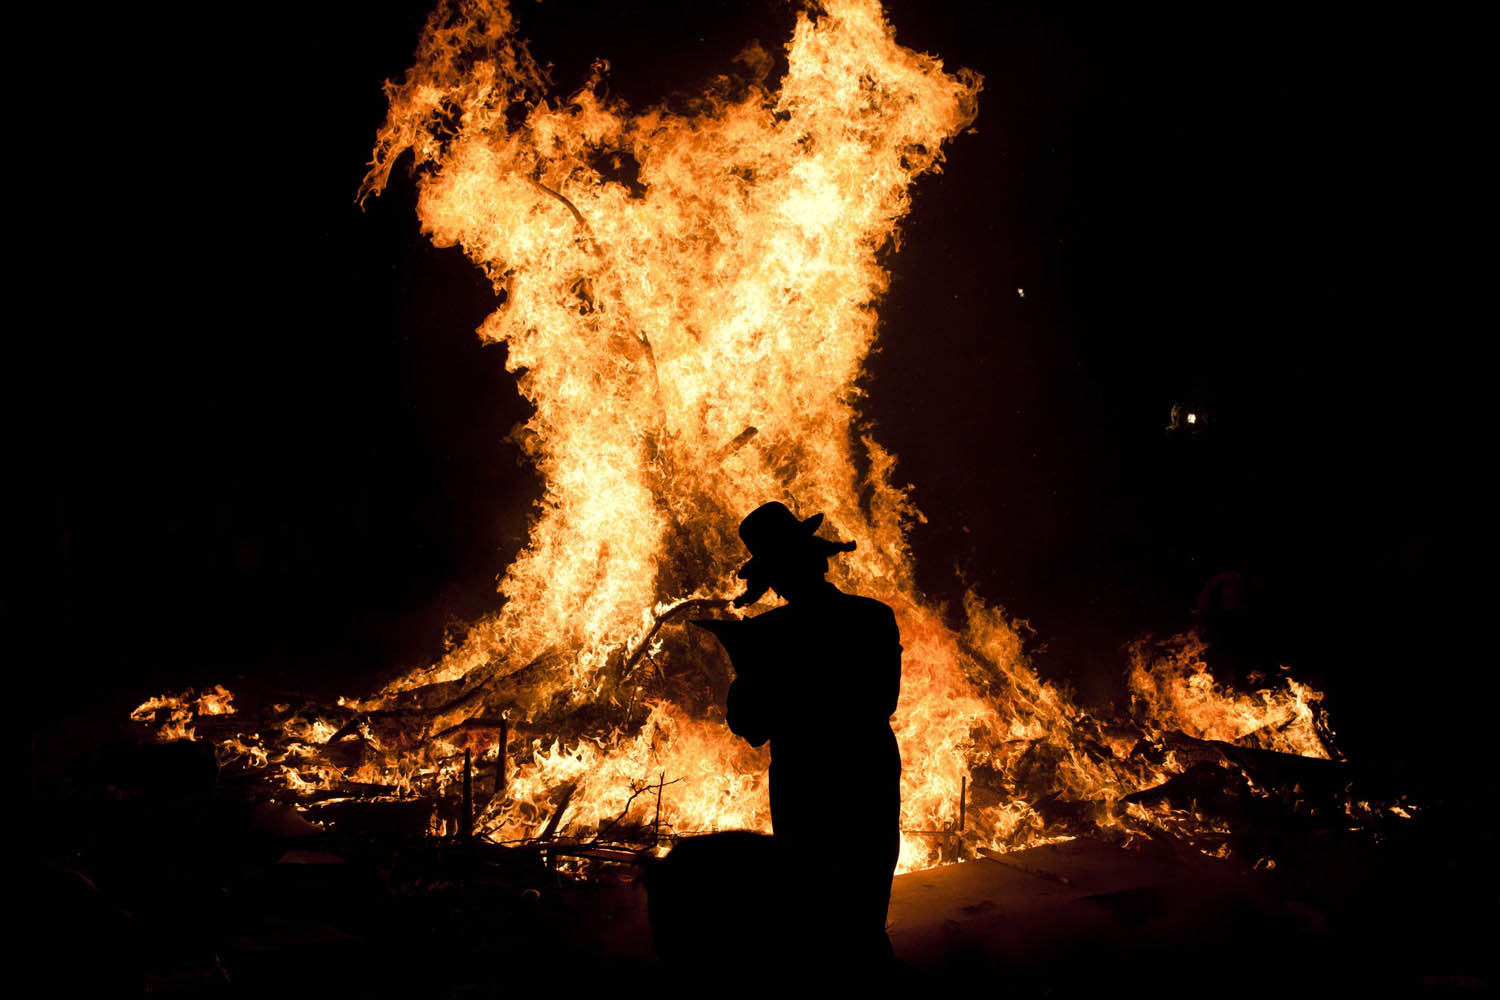 May 18, 2014. An Ultra Orthodox Jewish man stands near a bonfire in the neighborhood of Mea Shearim in Jerusalem, Israel during the commemoration the holy day of Lag Ba'Omer.